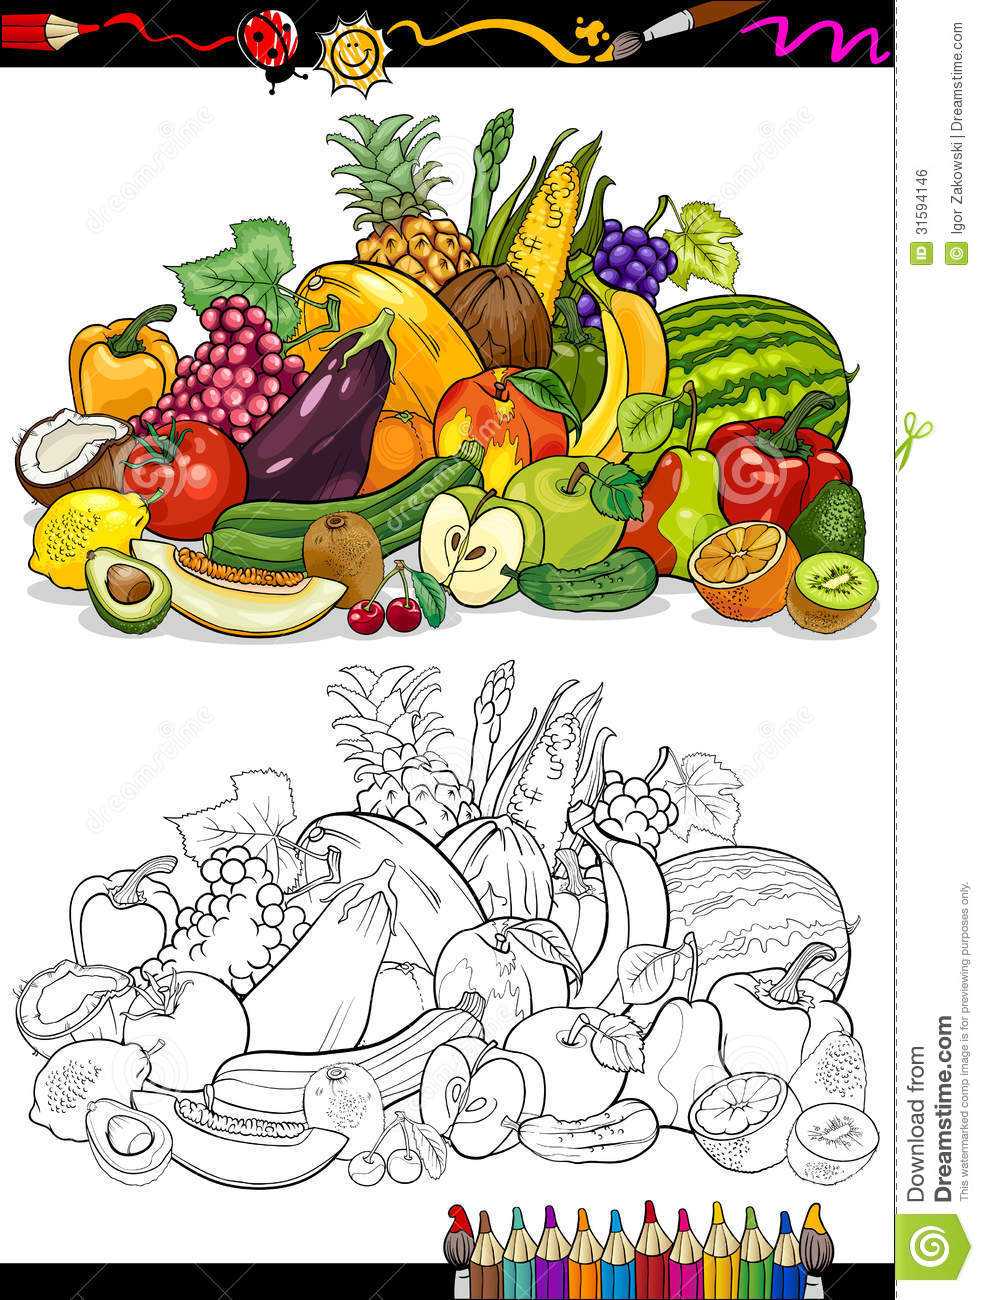 Fruits And Vegetables For Coloring Book Stock Vector Illustration Of Cherry Game 31594146